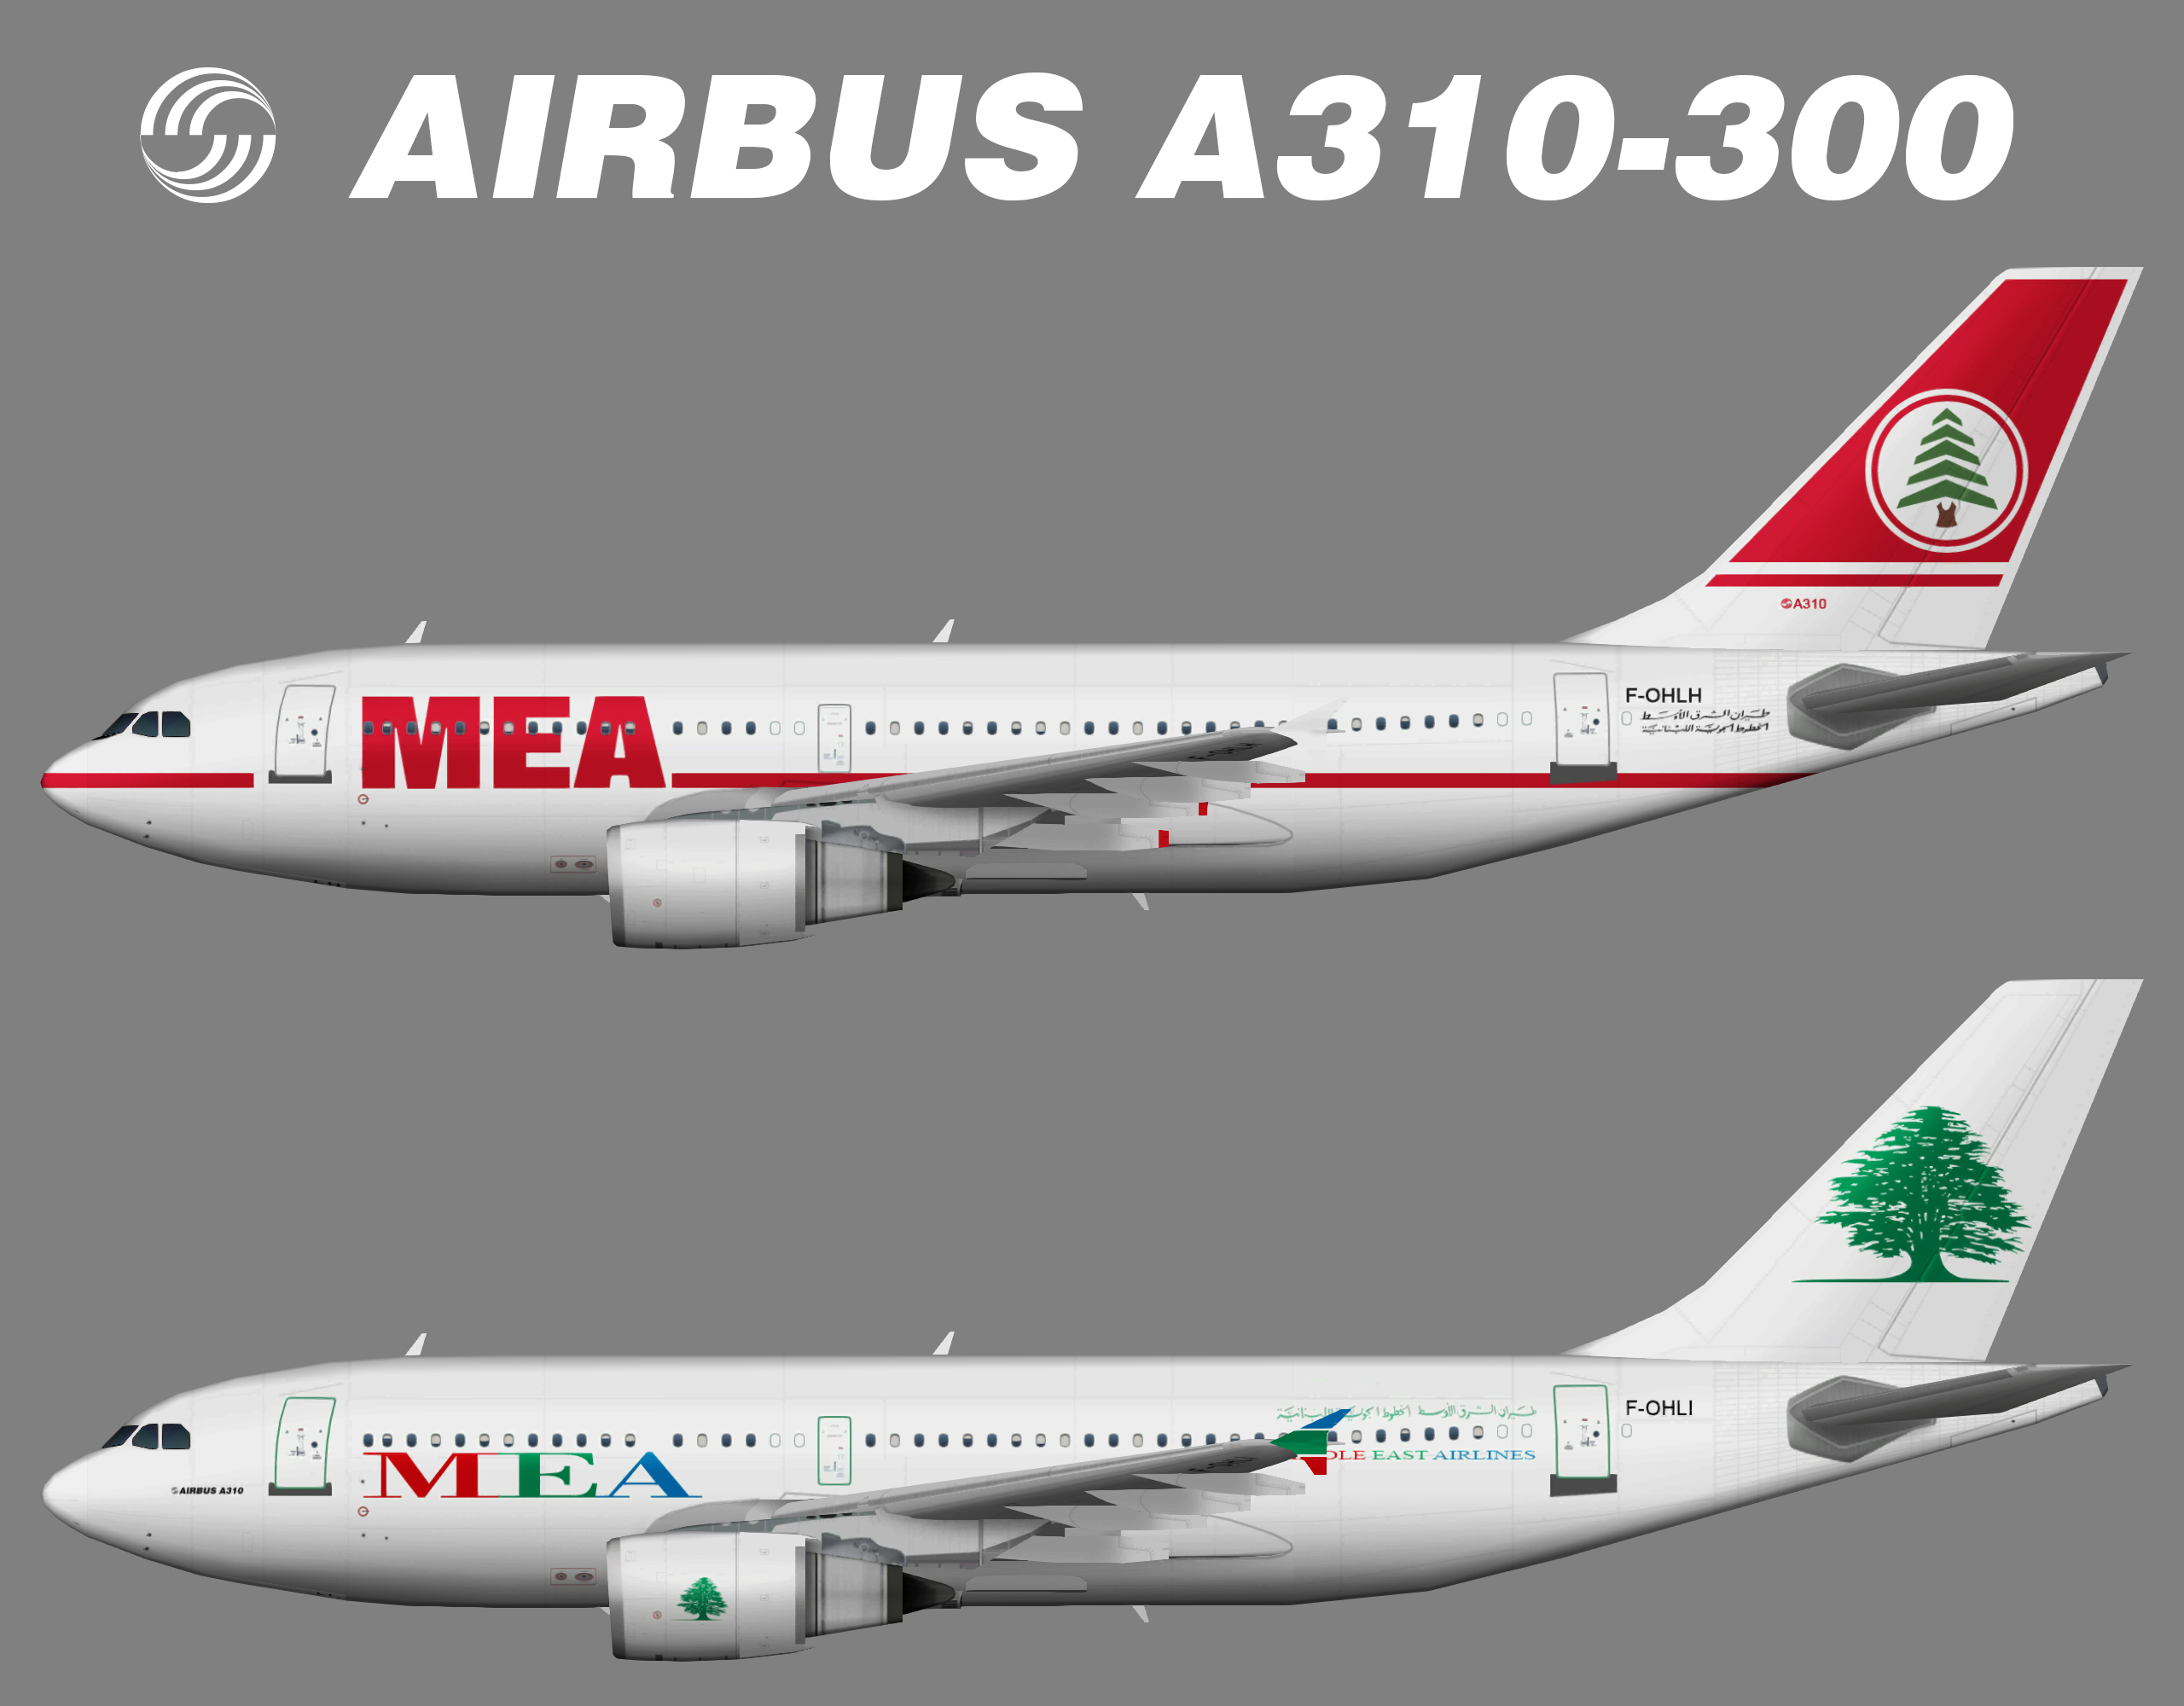 Middle East Airlines MEA Airbus A310-300